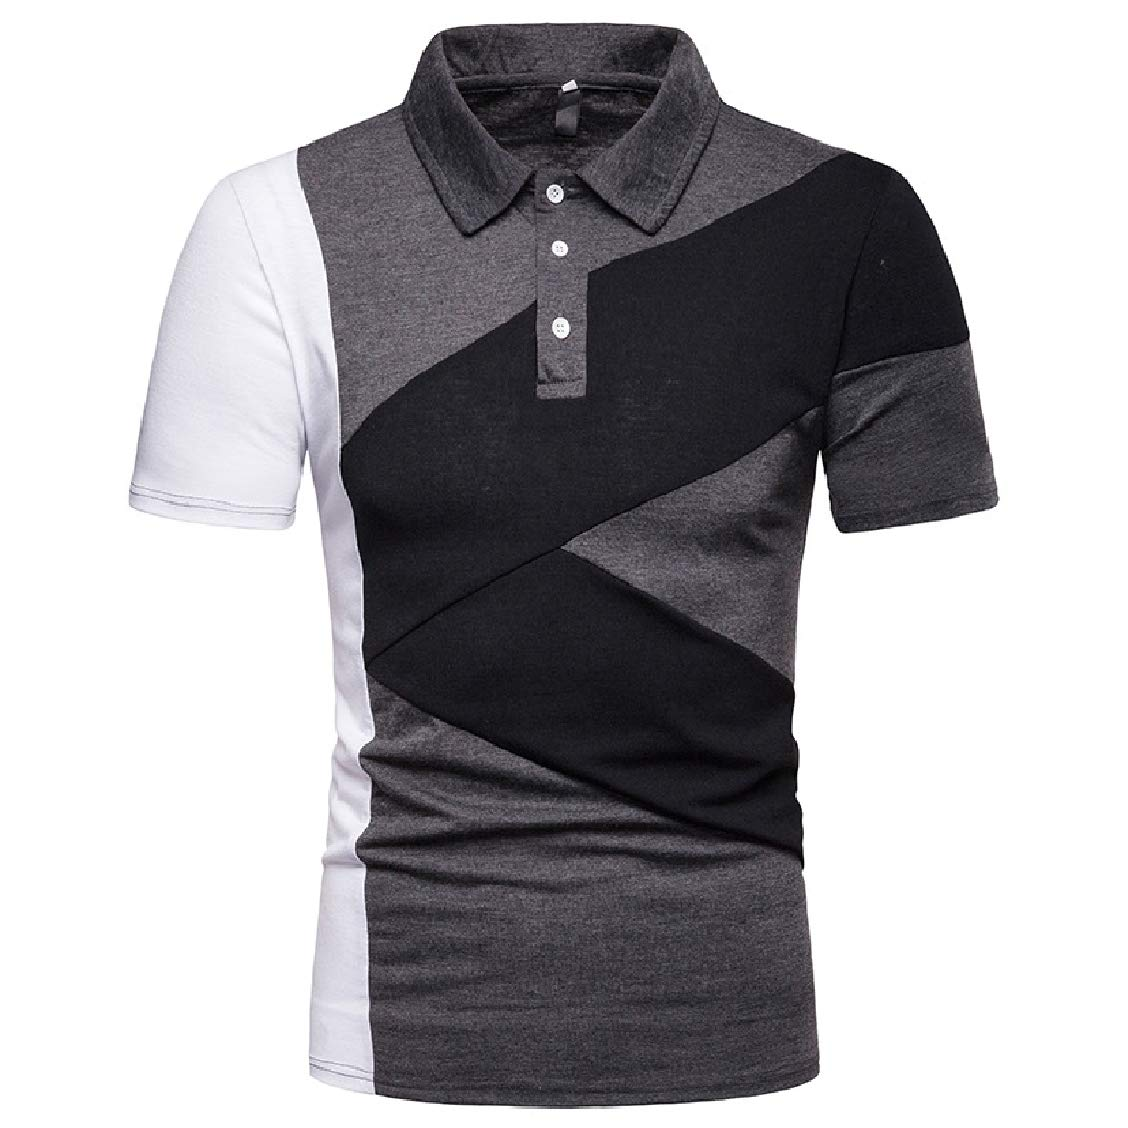 FieerMen Business Patched Plus Size Short-Sleeve Summer Top Tees Polo